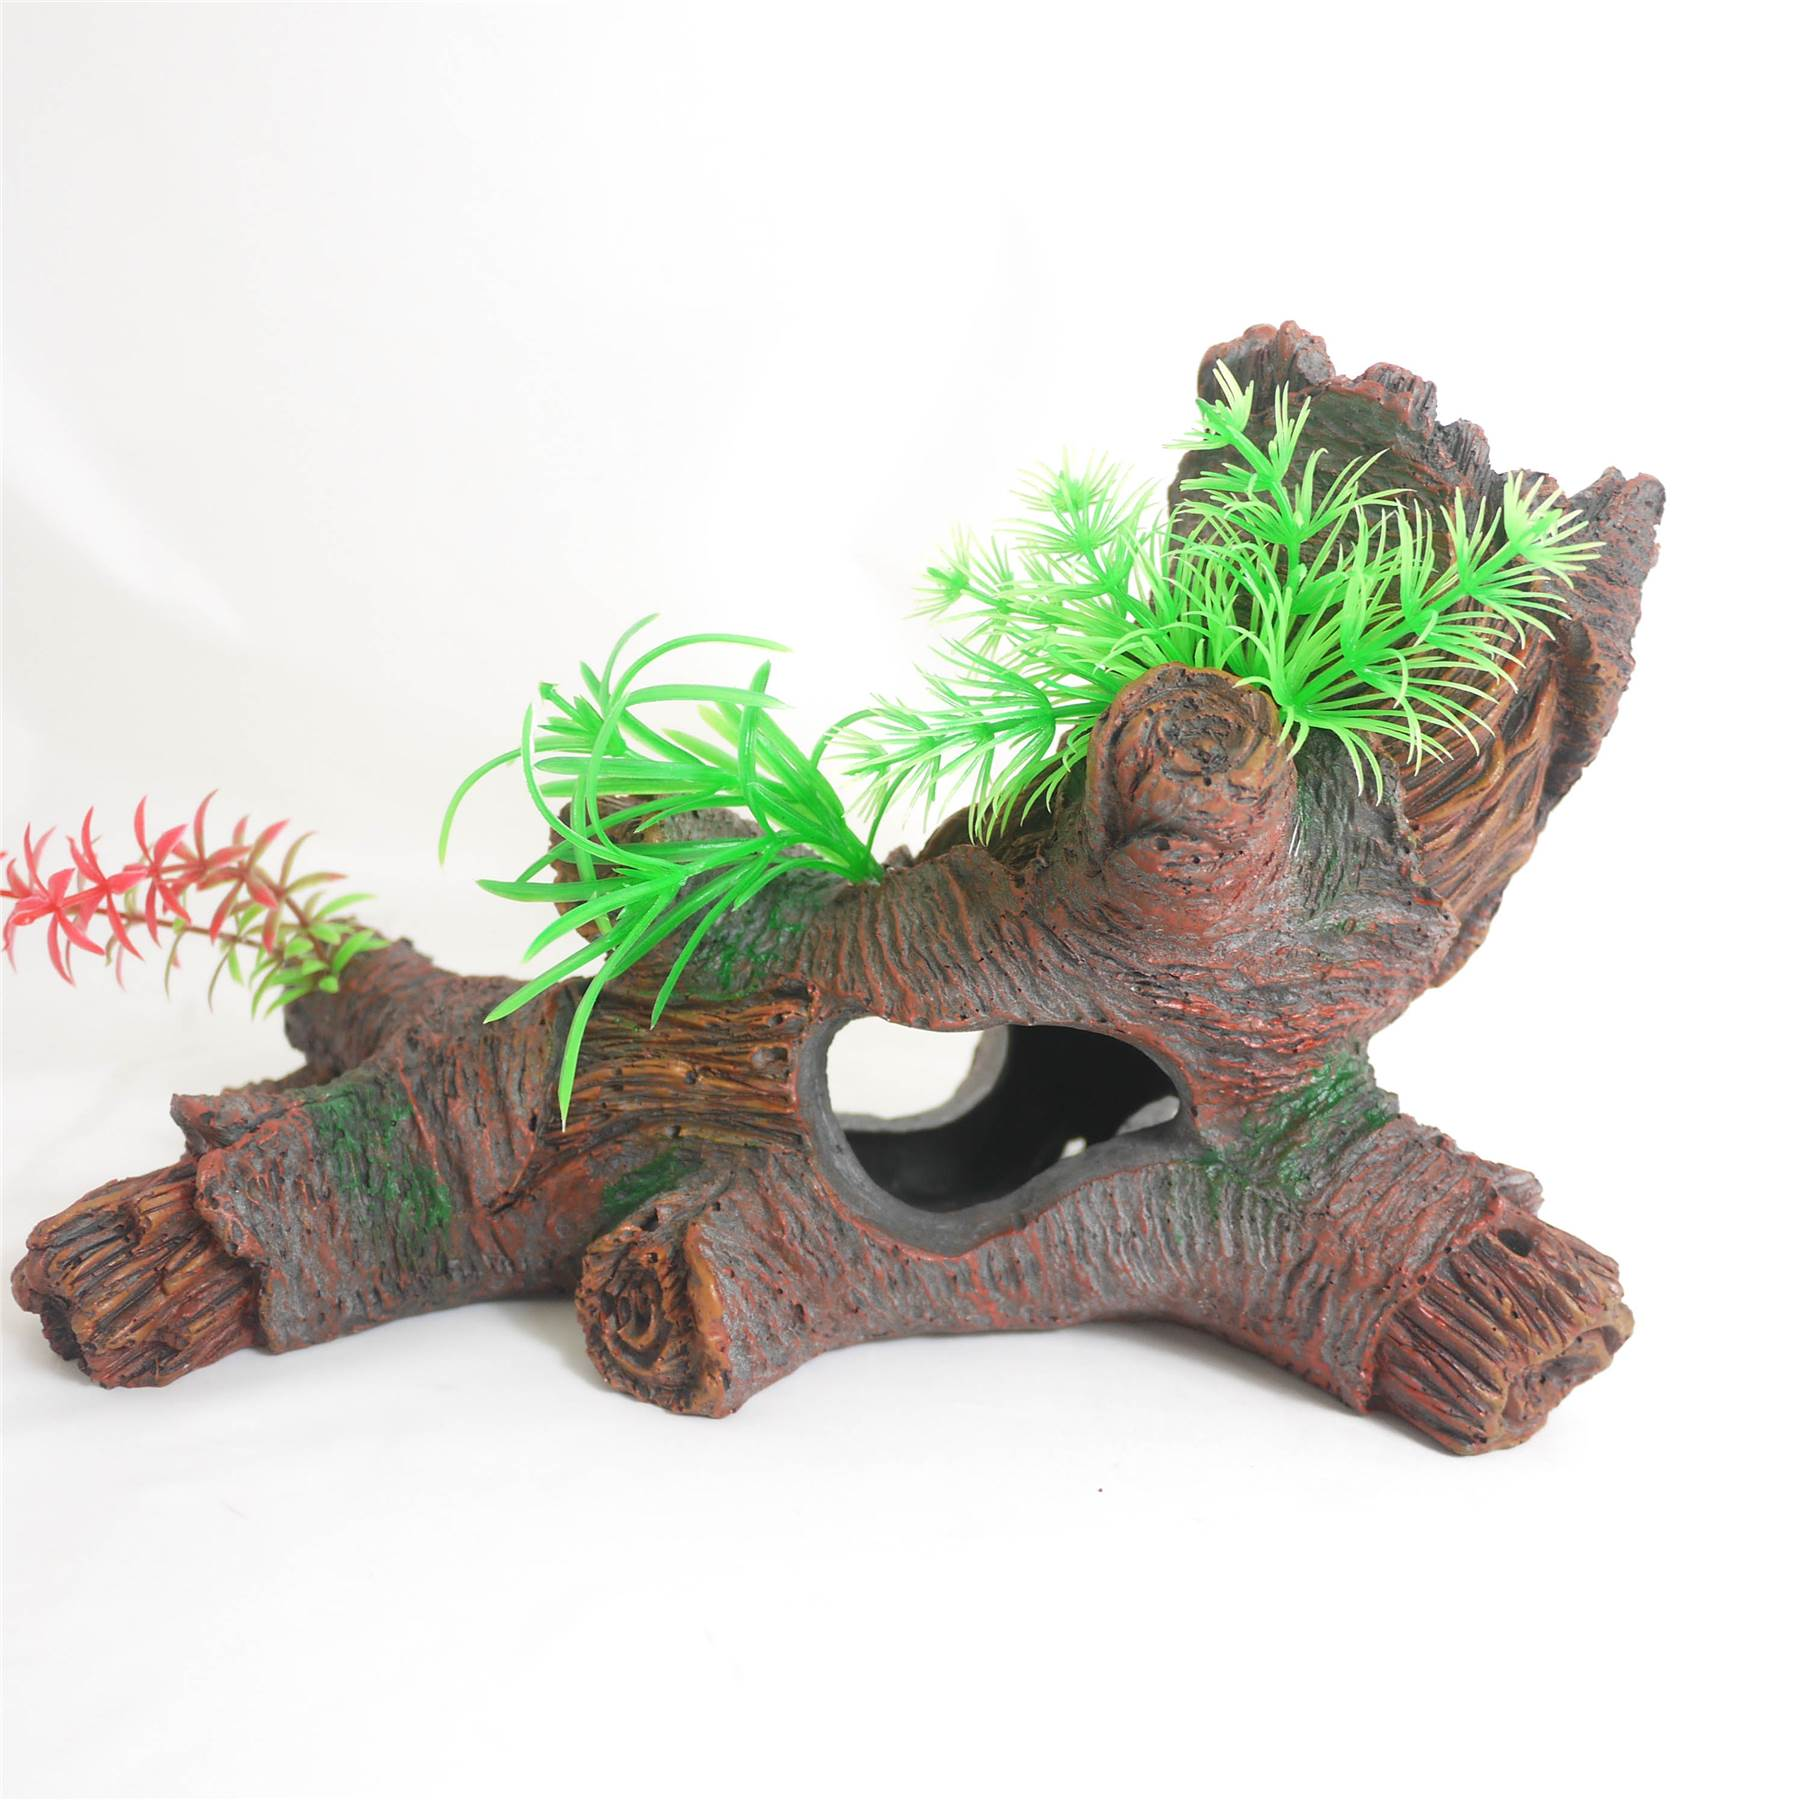 Aquarium resin bogwood drift wood log ornament fish tank for Aquarium wood decoration